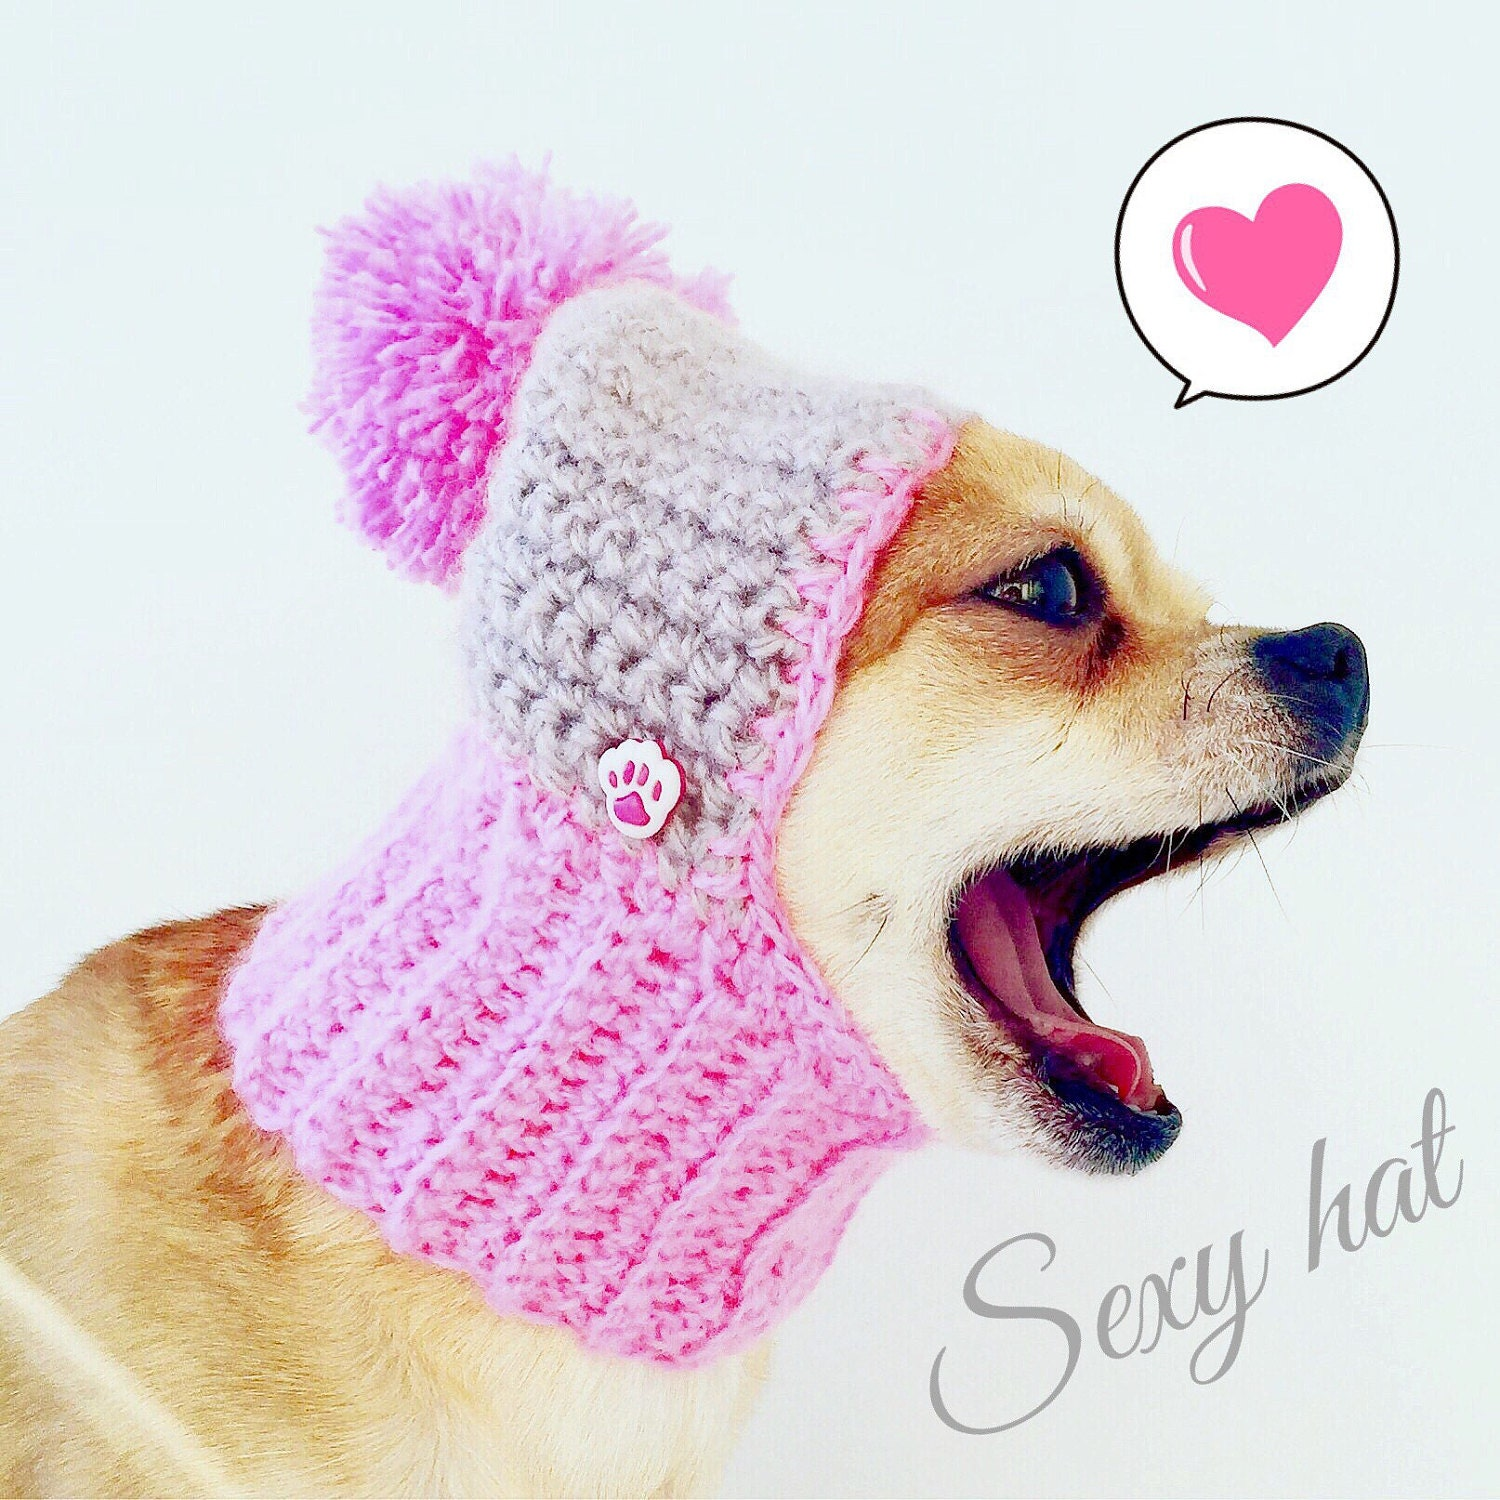 Dog crib for sale philippines - Pink Dog Hat Cozy Crochet Dog Hat Warm Knitted Dog Hat Puppy Chunky Hat Small Winter Dog Hat Dog Costume Knit Dog Clothes Dogs Hats For Dogs